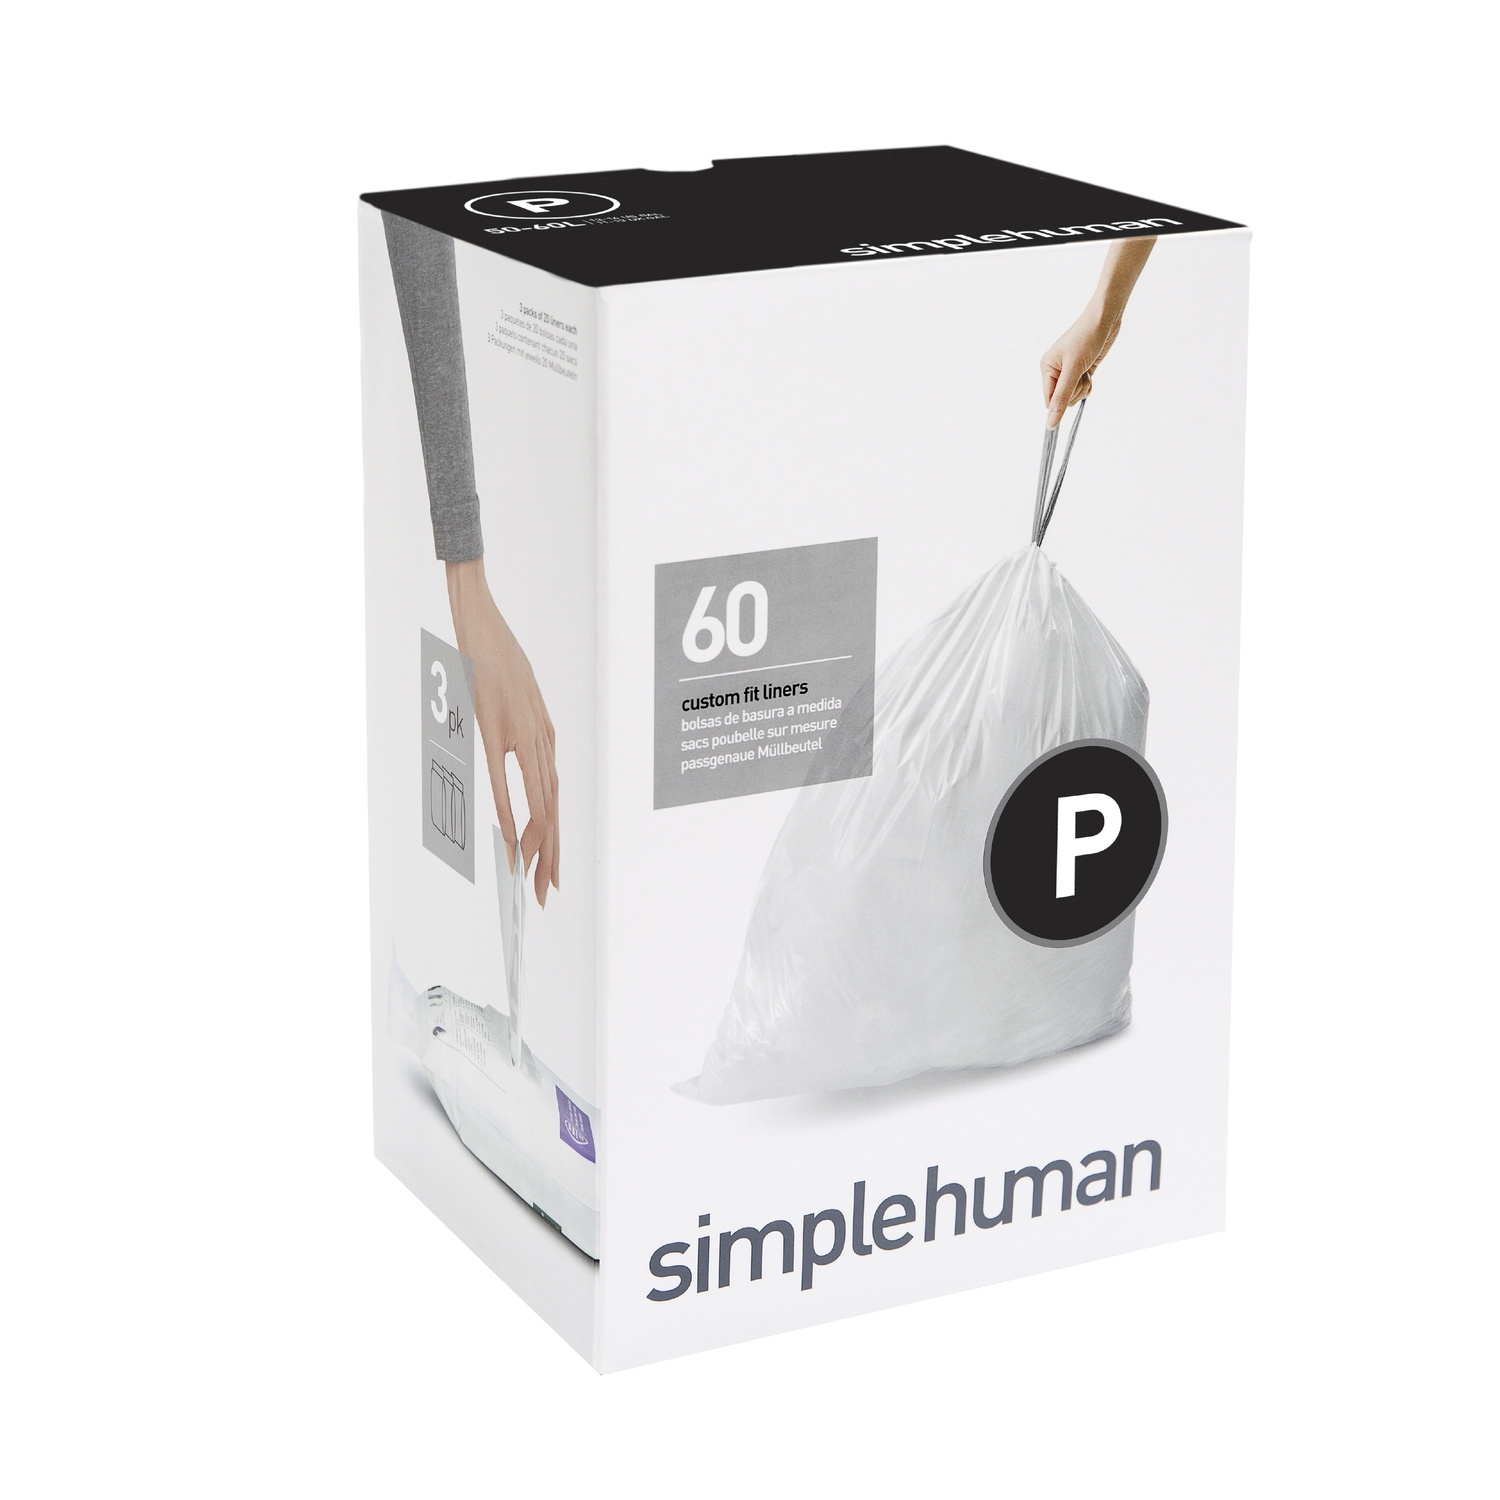 simplehuman  Custom Fit Code P  13-16 gal. Trash Bag Liner  Drawstring  60 pk